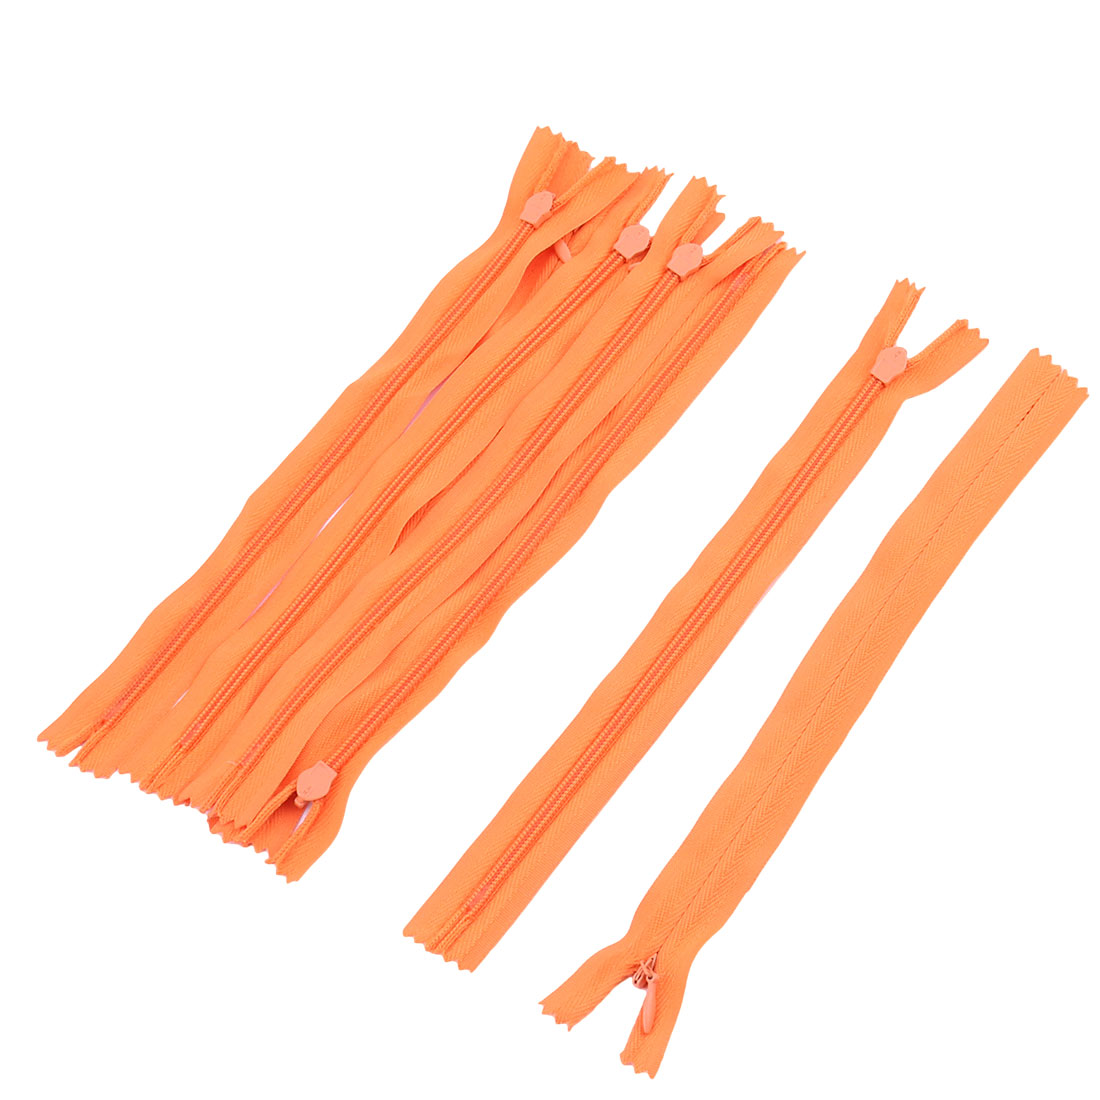 Home Tailor Sewer Nylon Coil Craft Invisible Zippers 20cm Long Orange 7pcs